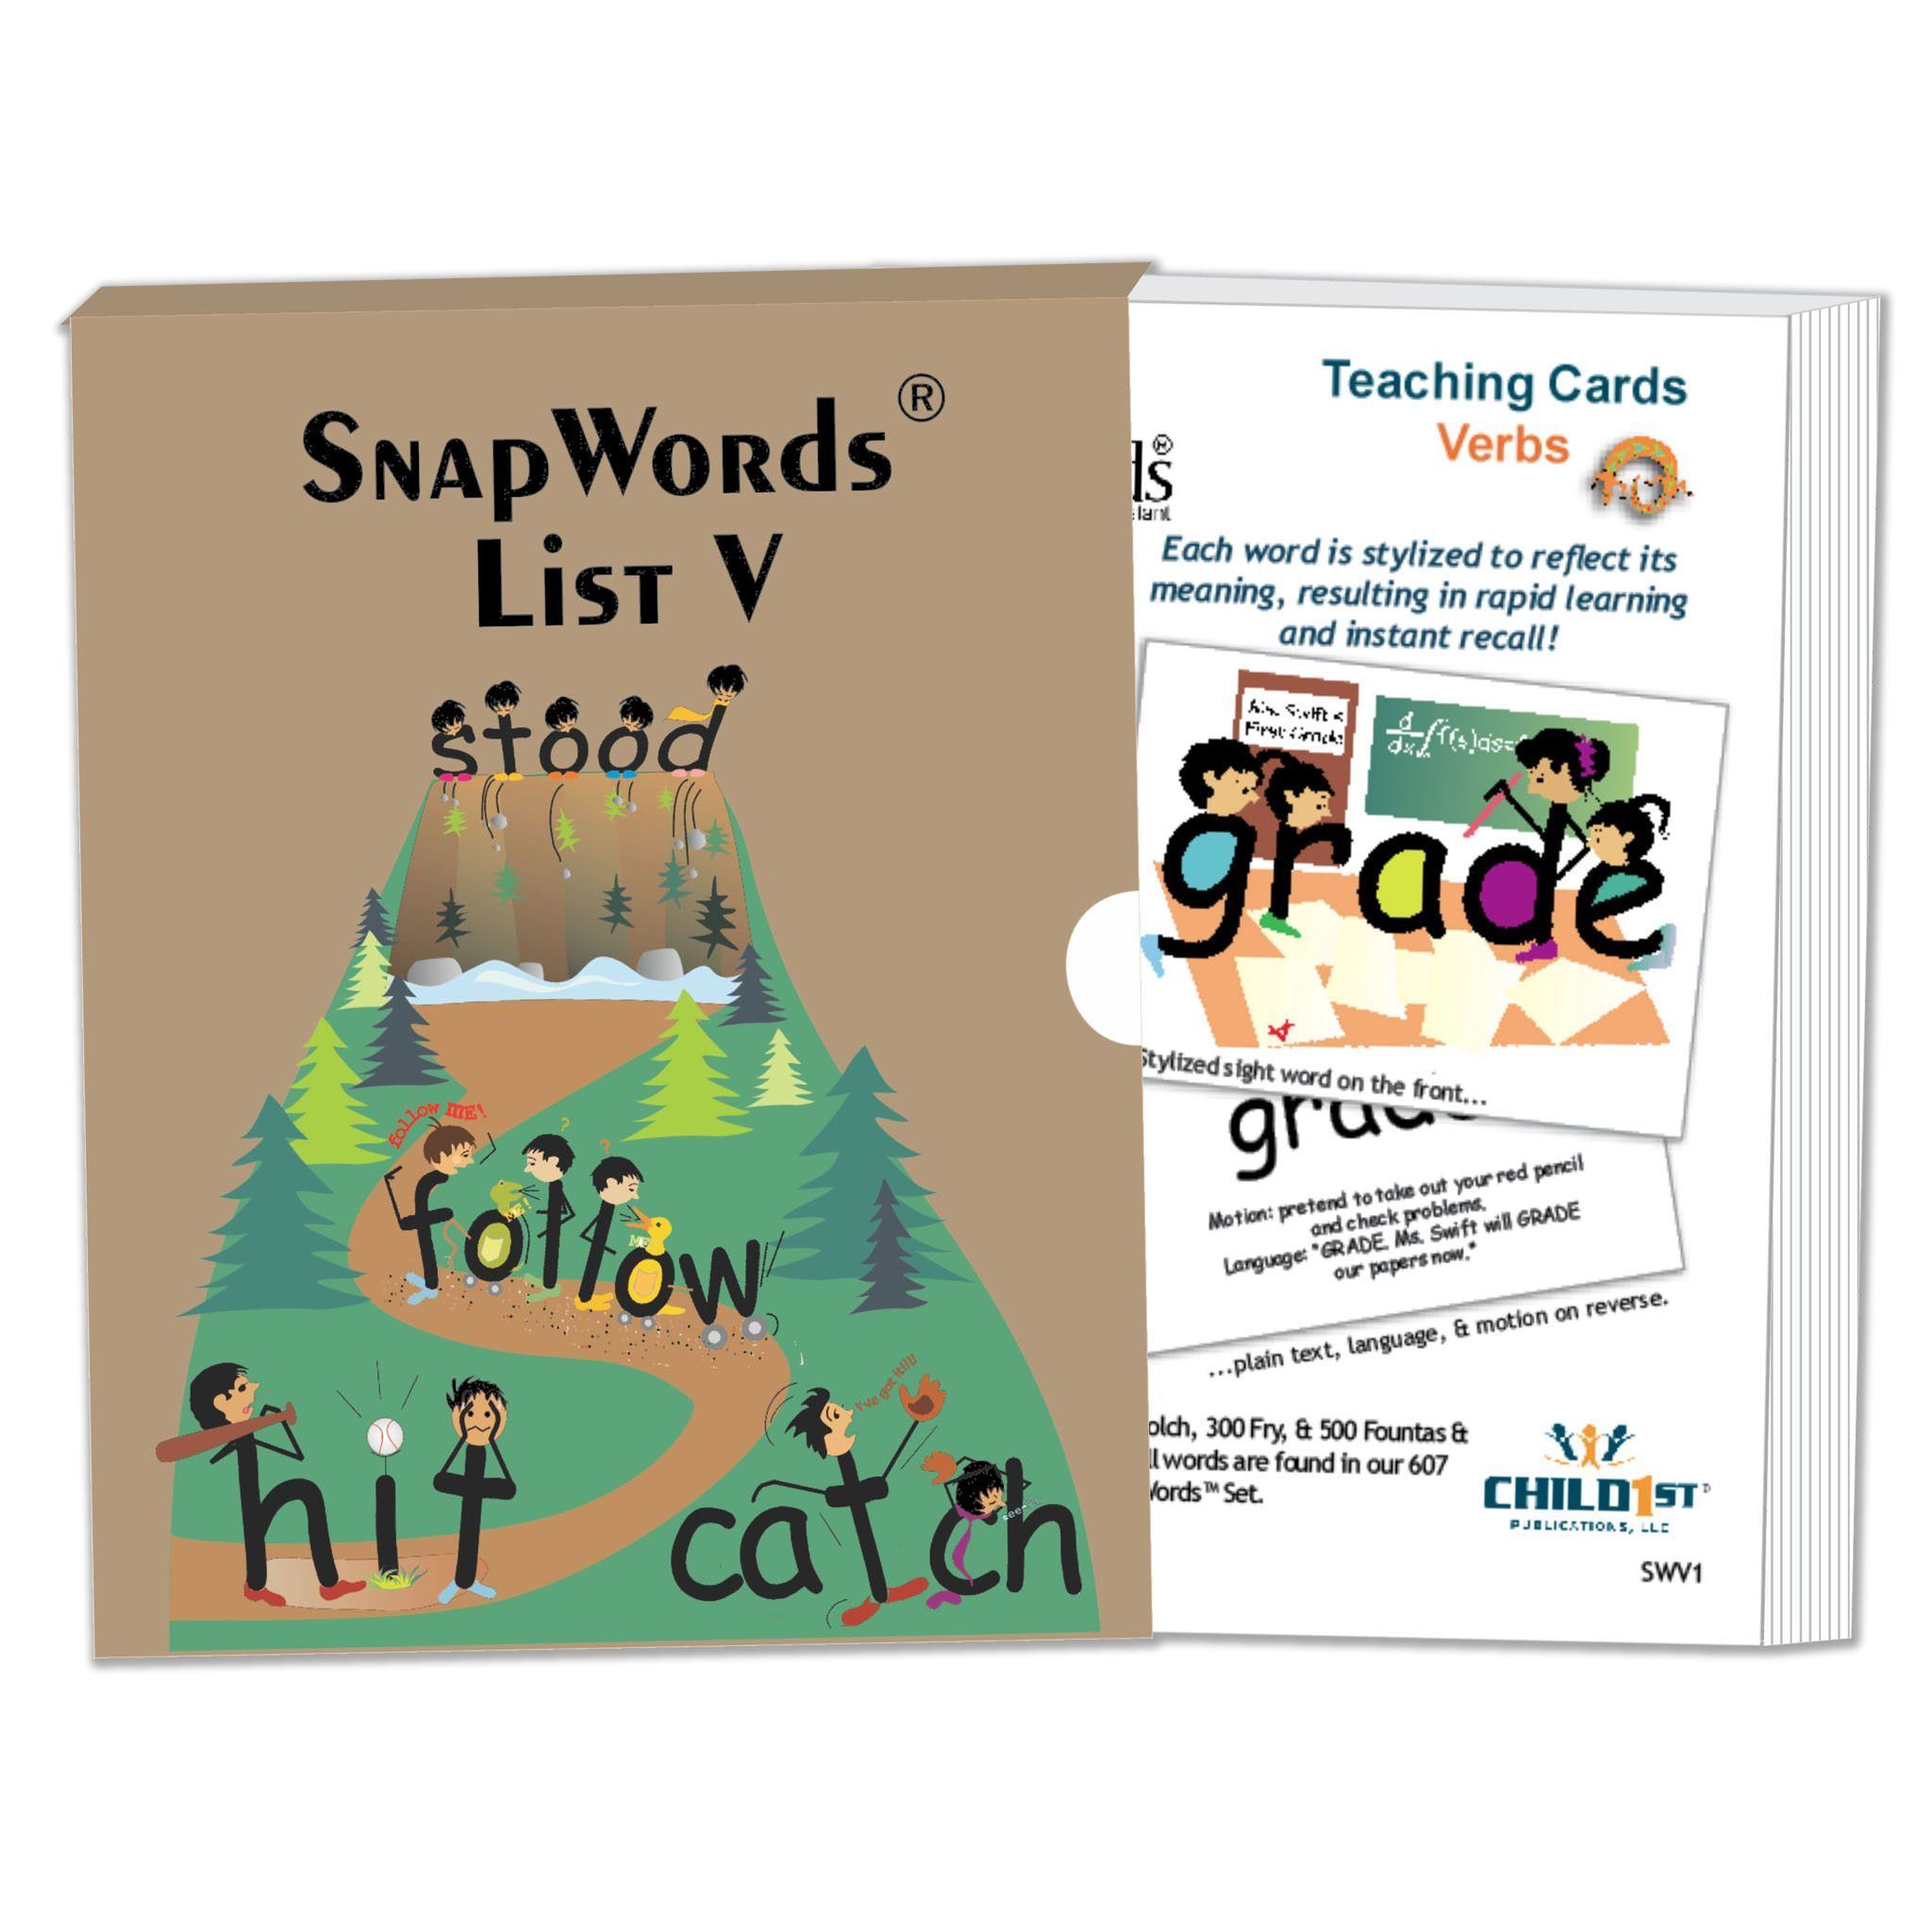 Bilingual dolphin counting card 6 clipart etc - Snapwords Verbs Teaching Cards